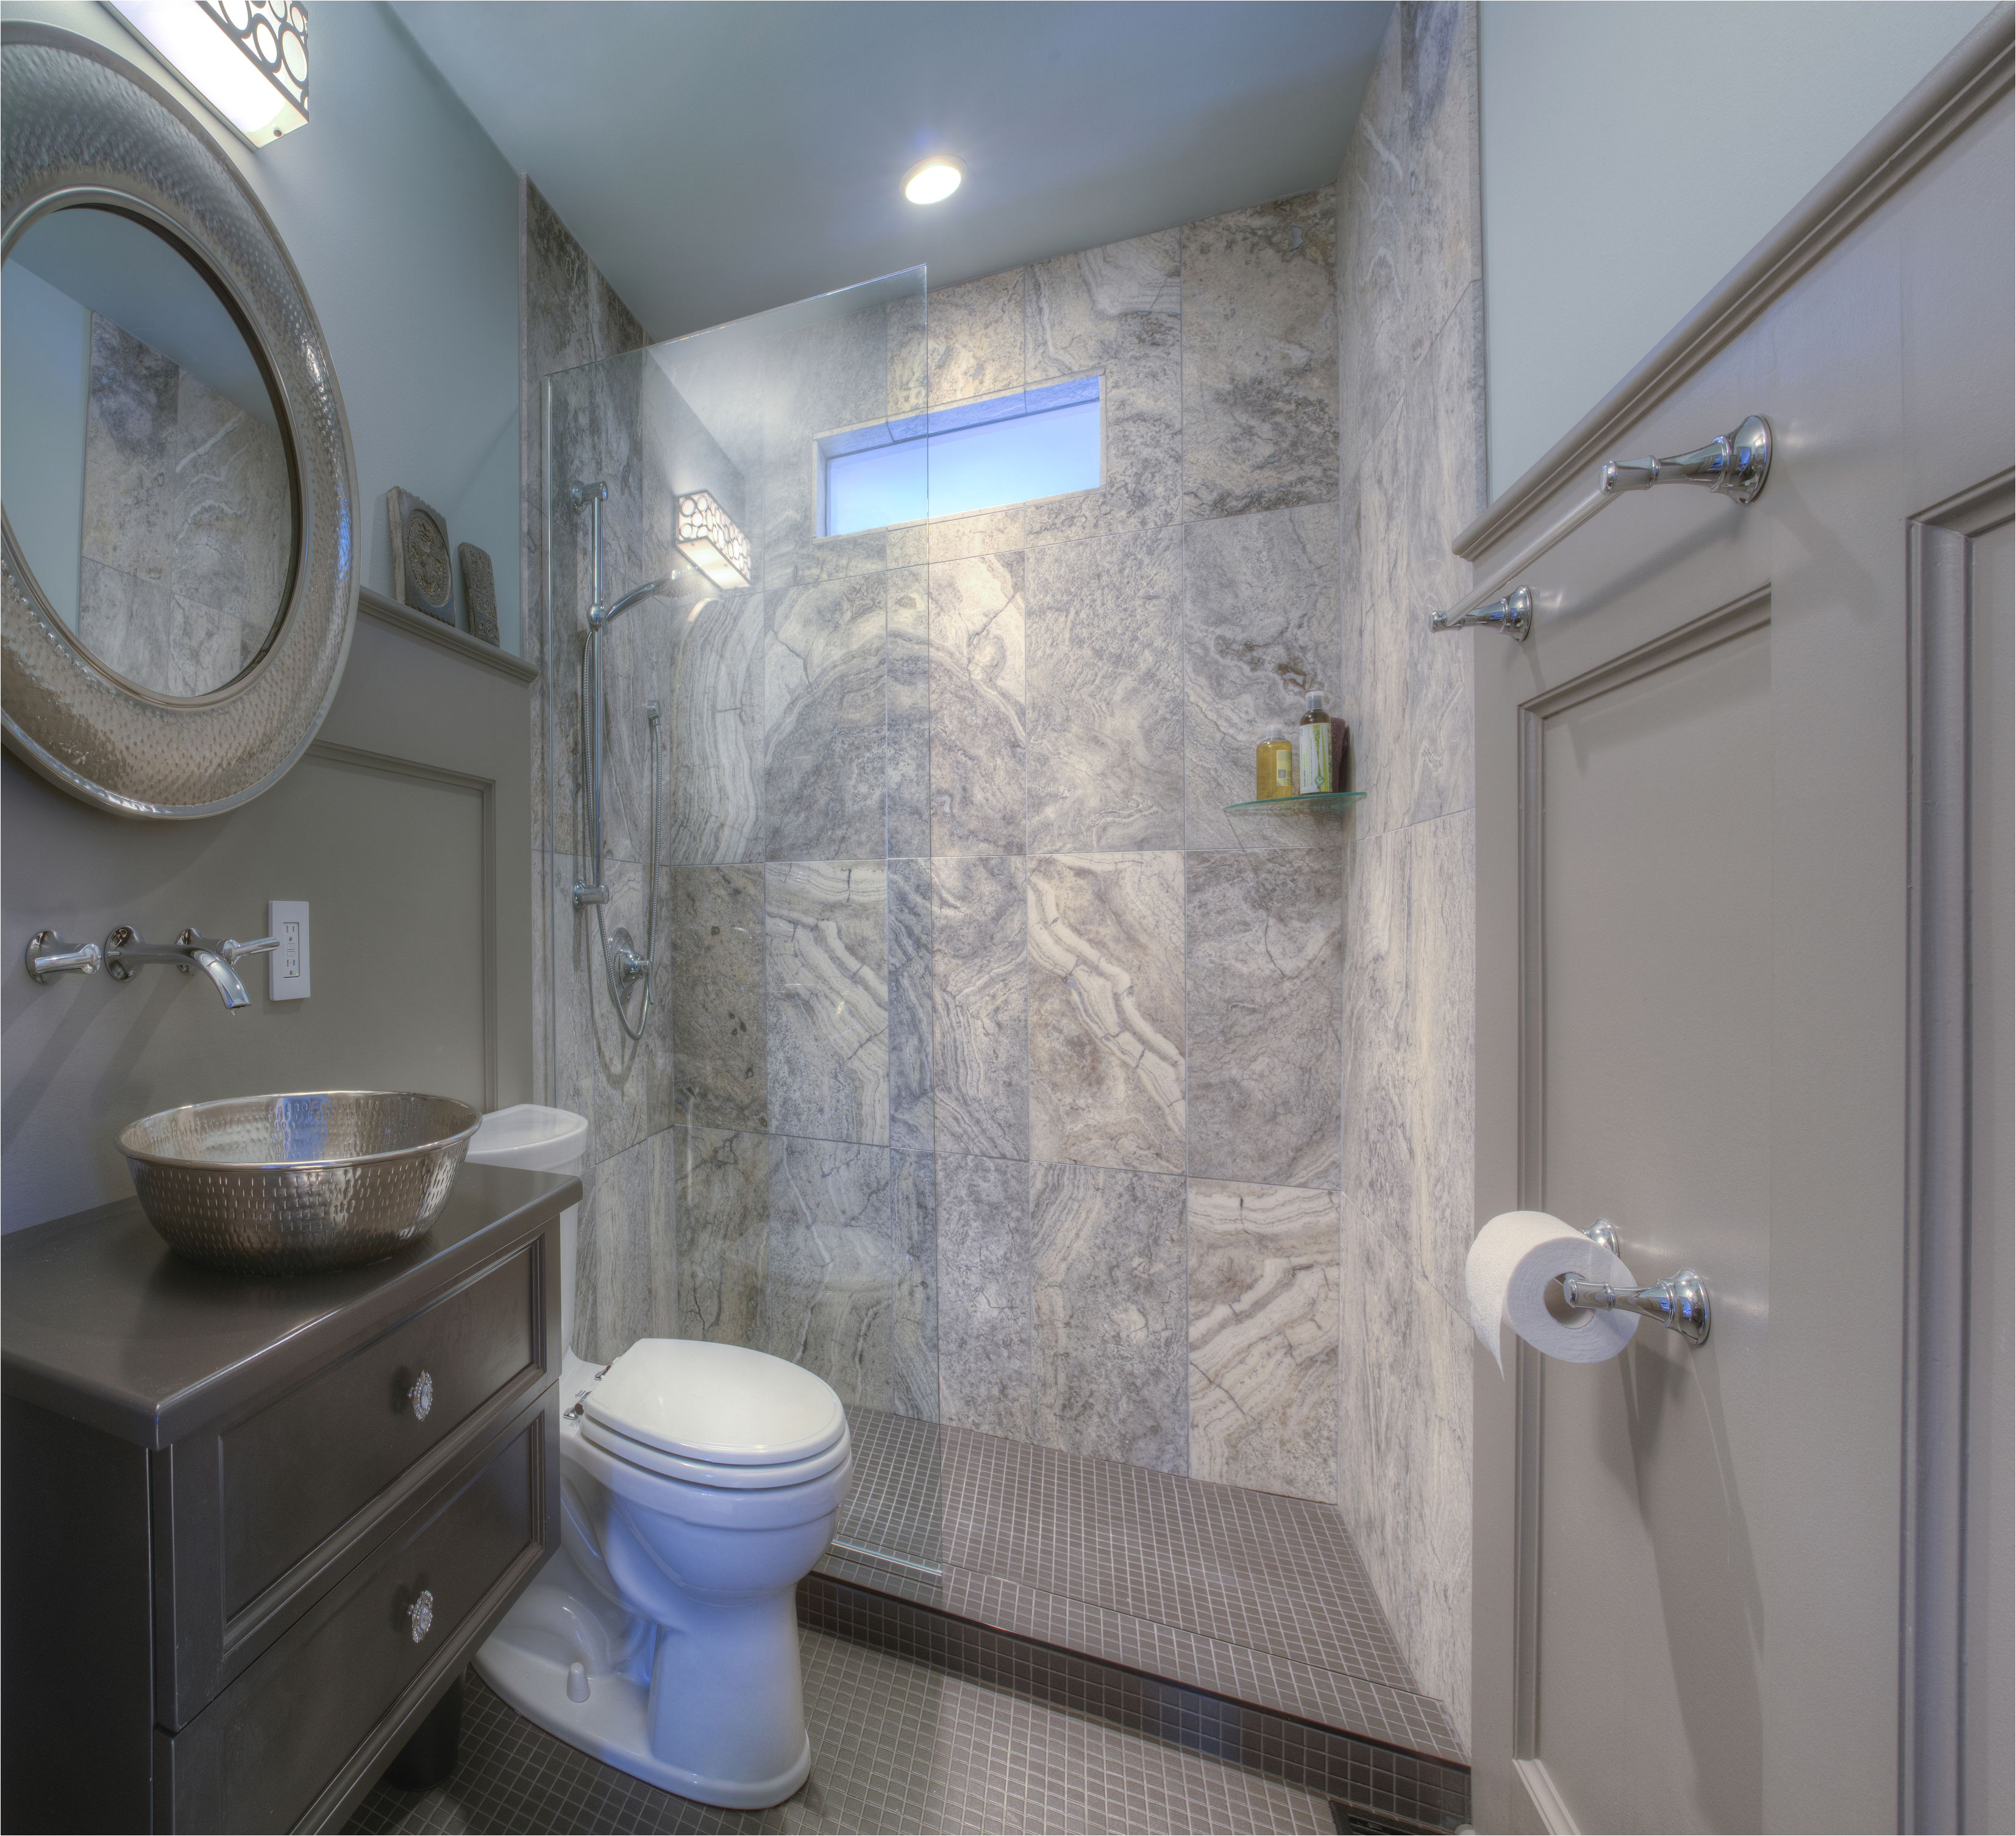 wide angle view of a very small bathroom 516516879 5a948d45ba61770036a8a210 jpg